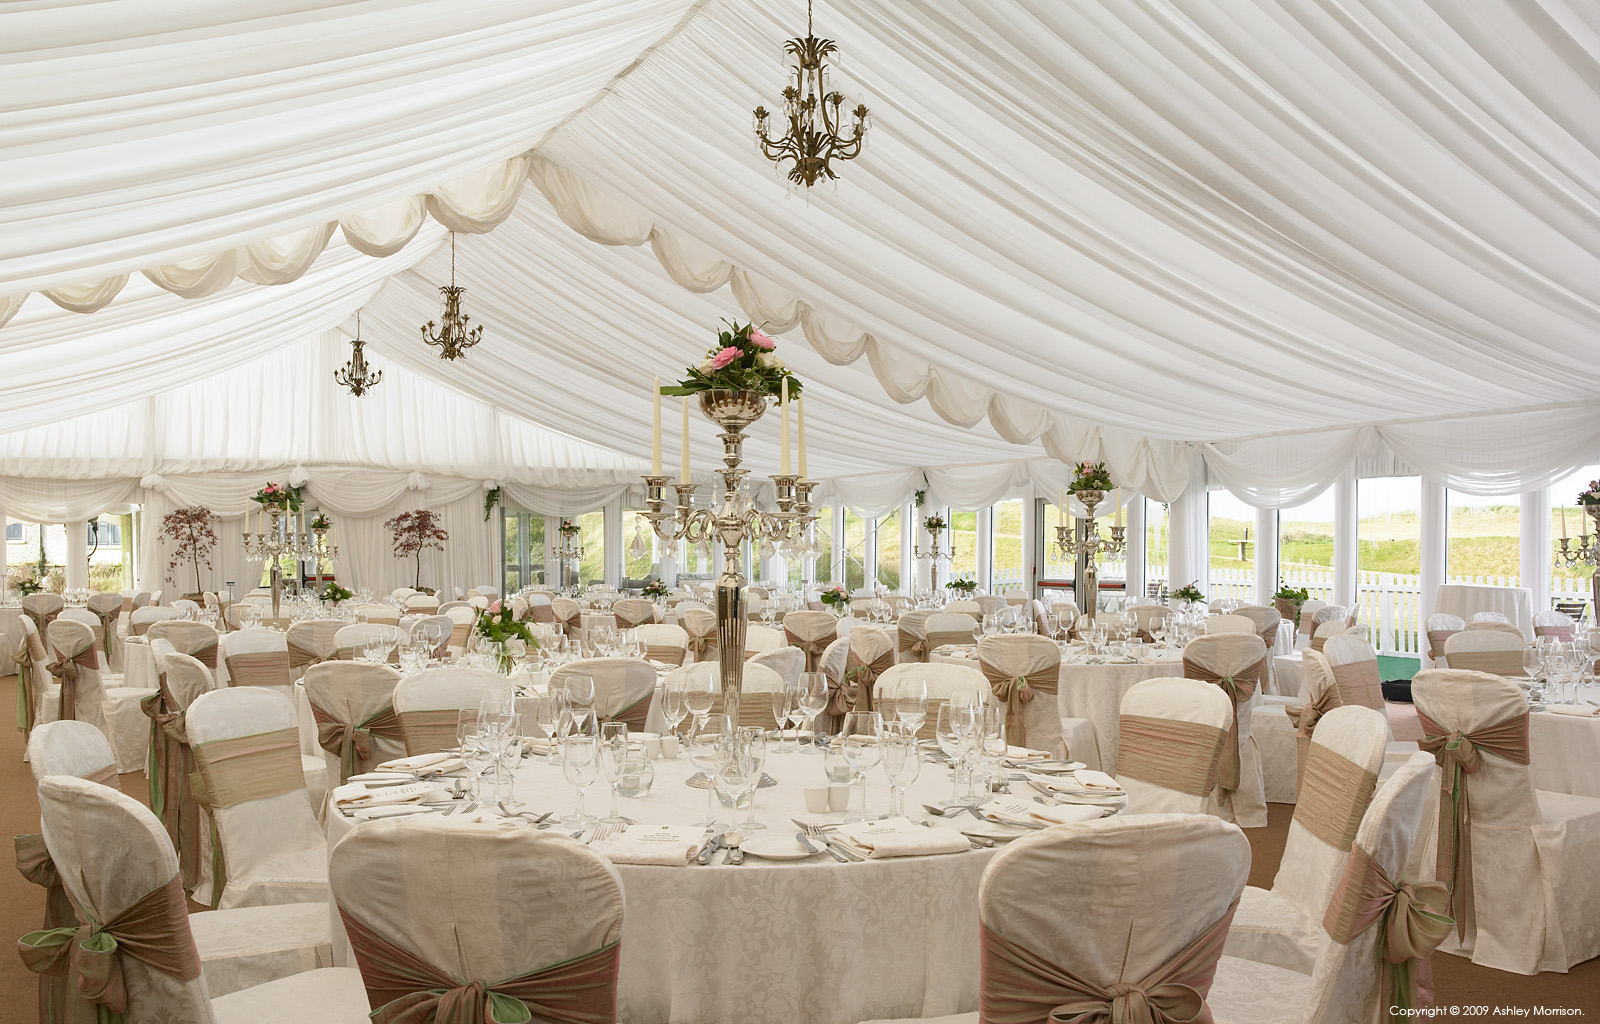 The wedding marquee at the Trump International Golf Links & Hotel in County Clare by Ashley Morrison.